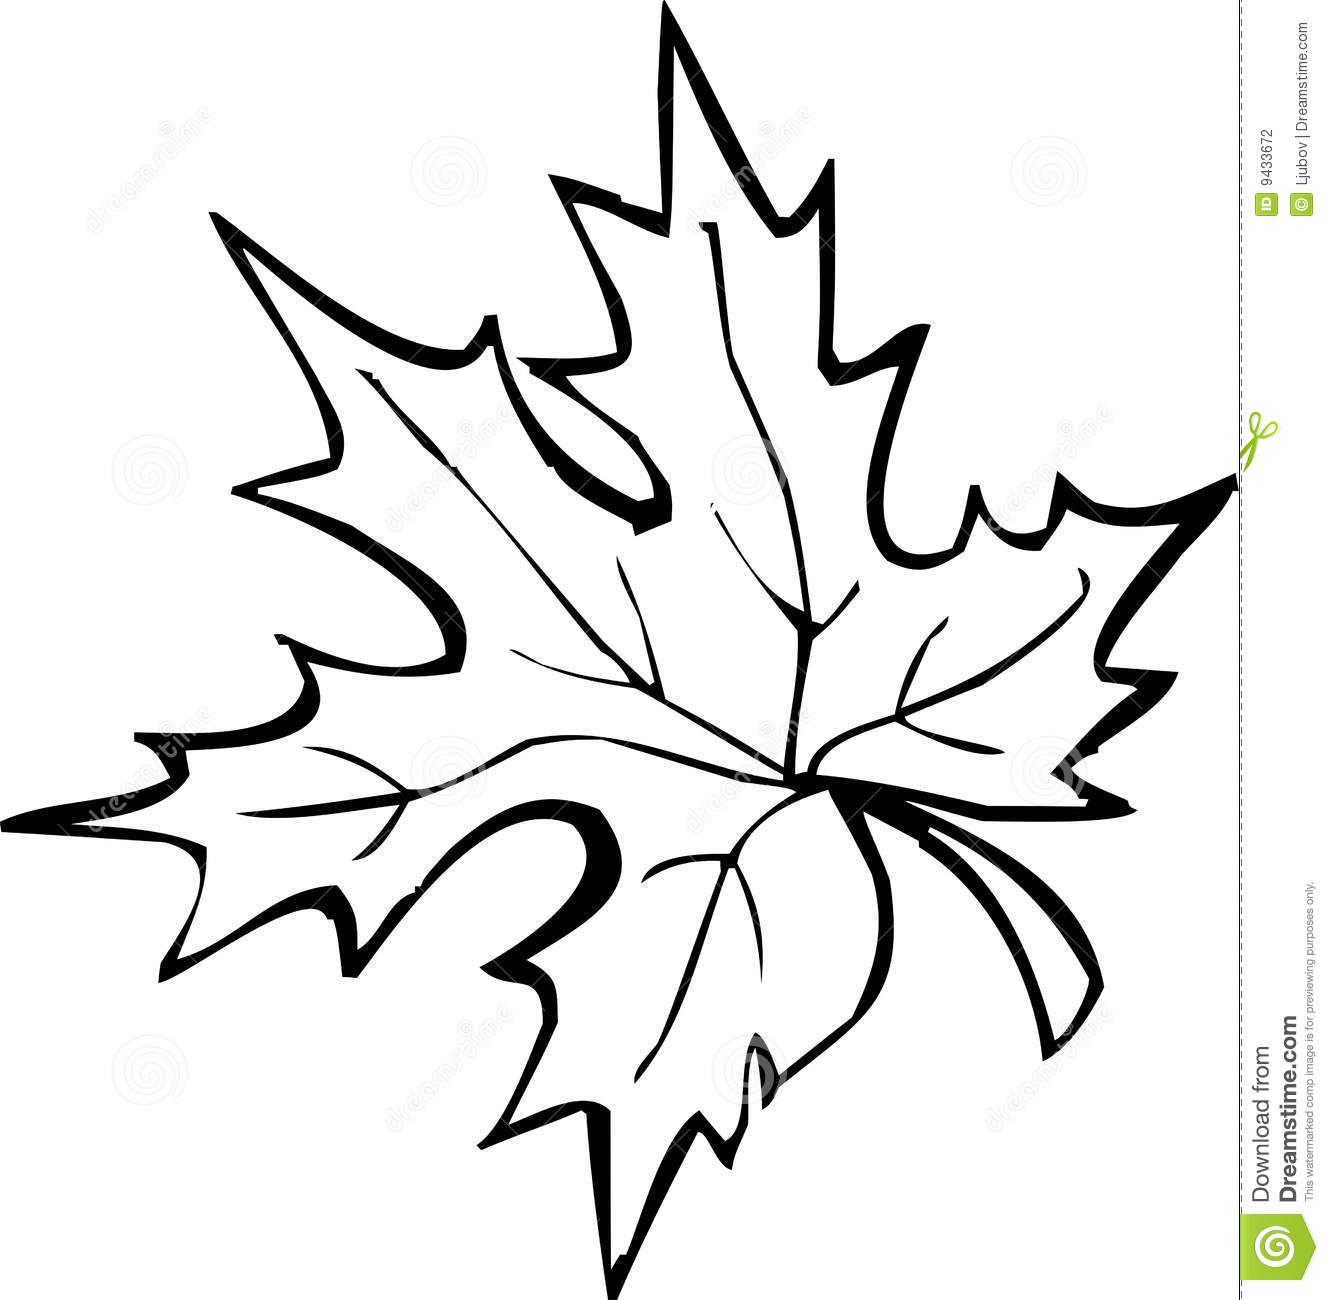 1329x1300 Maple Leaf Clipart Black And White